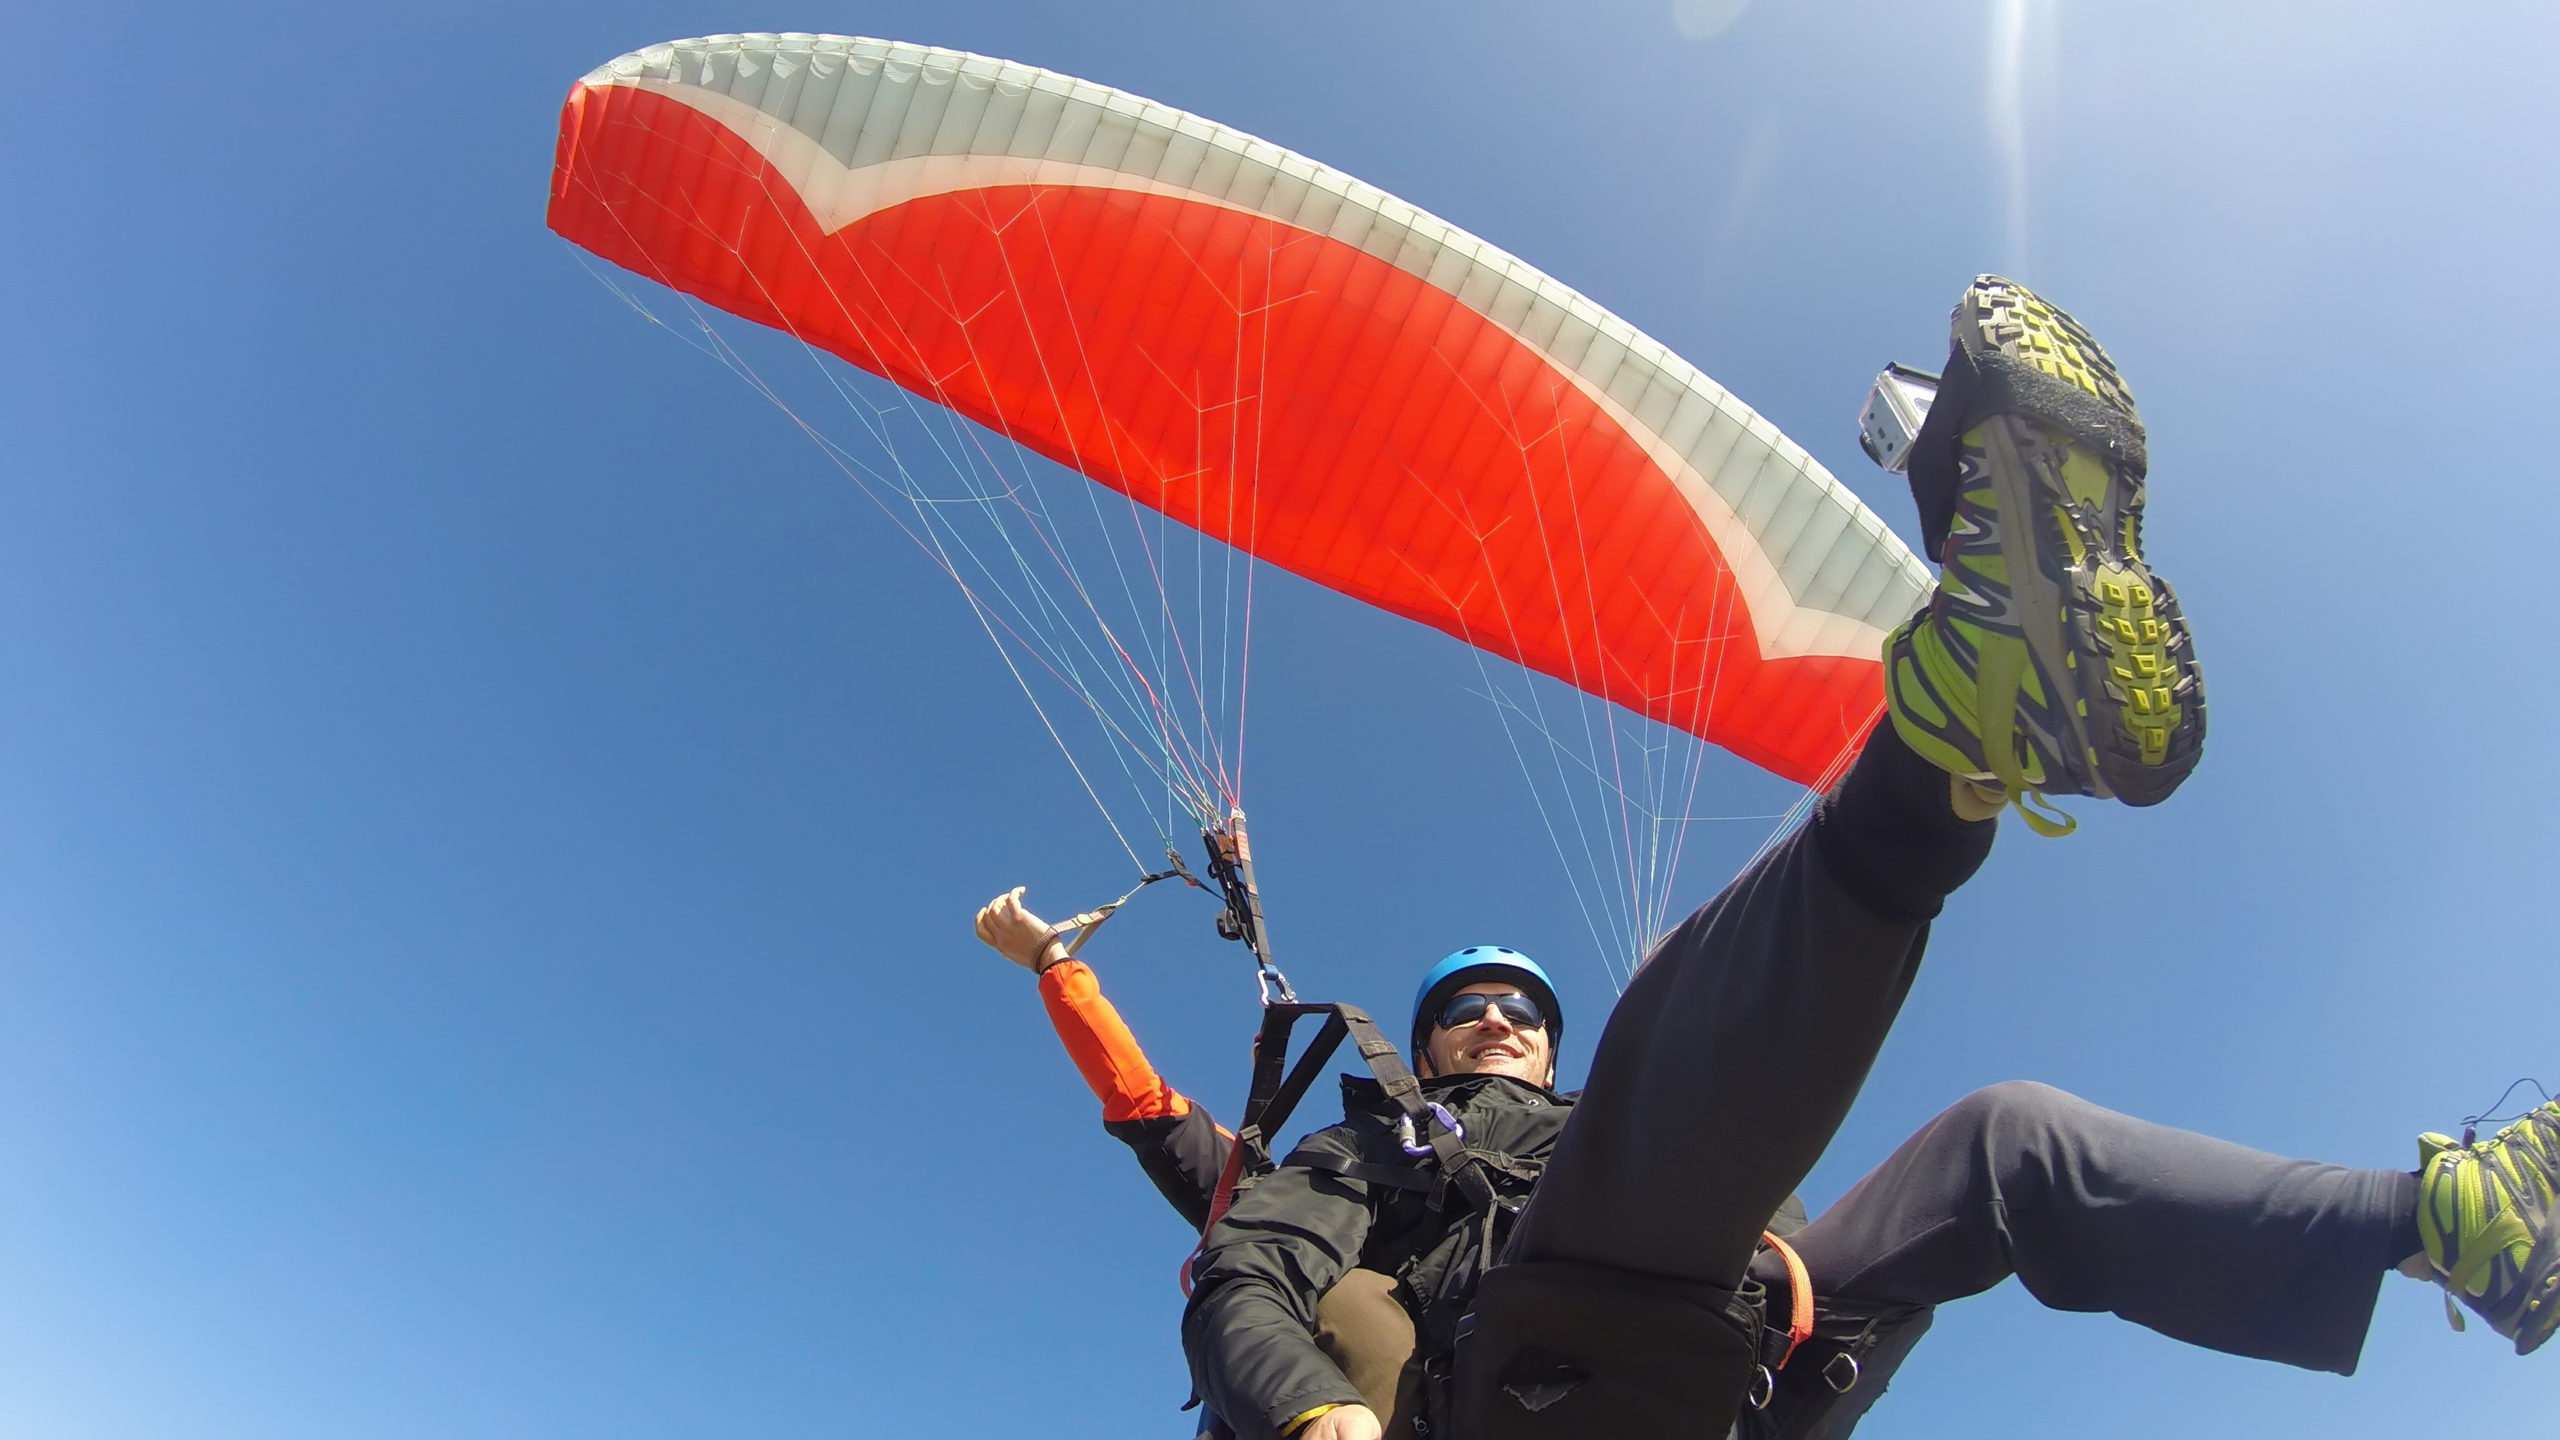 Flying Porterville for the first time…